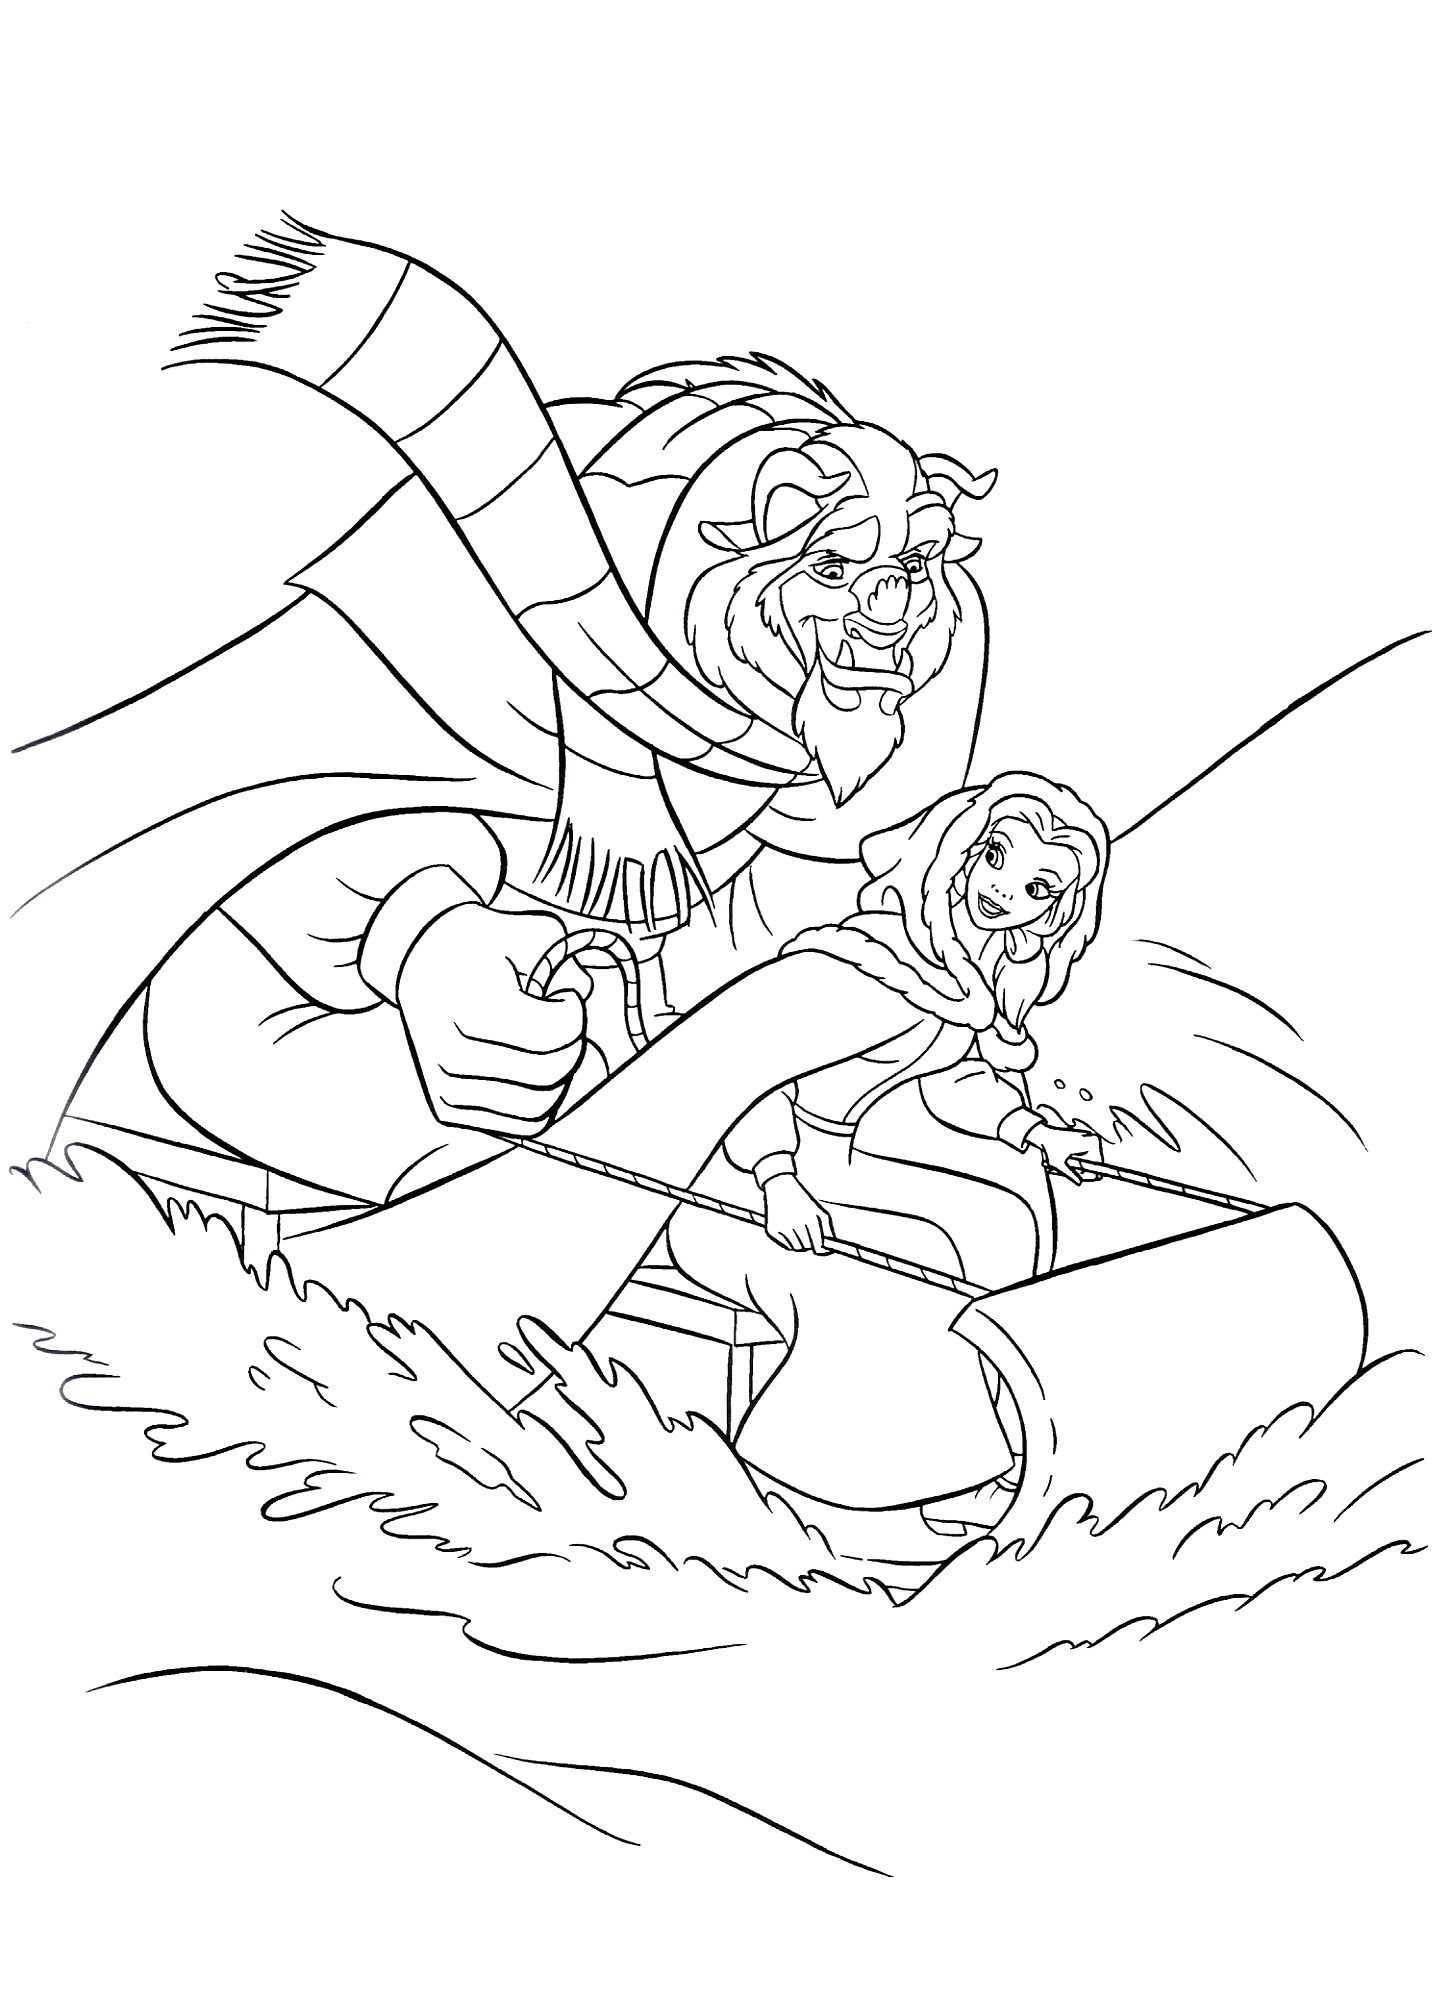 Funny The Beauty And The Beast coloring page